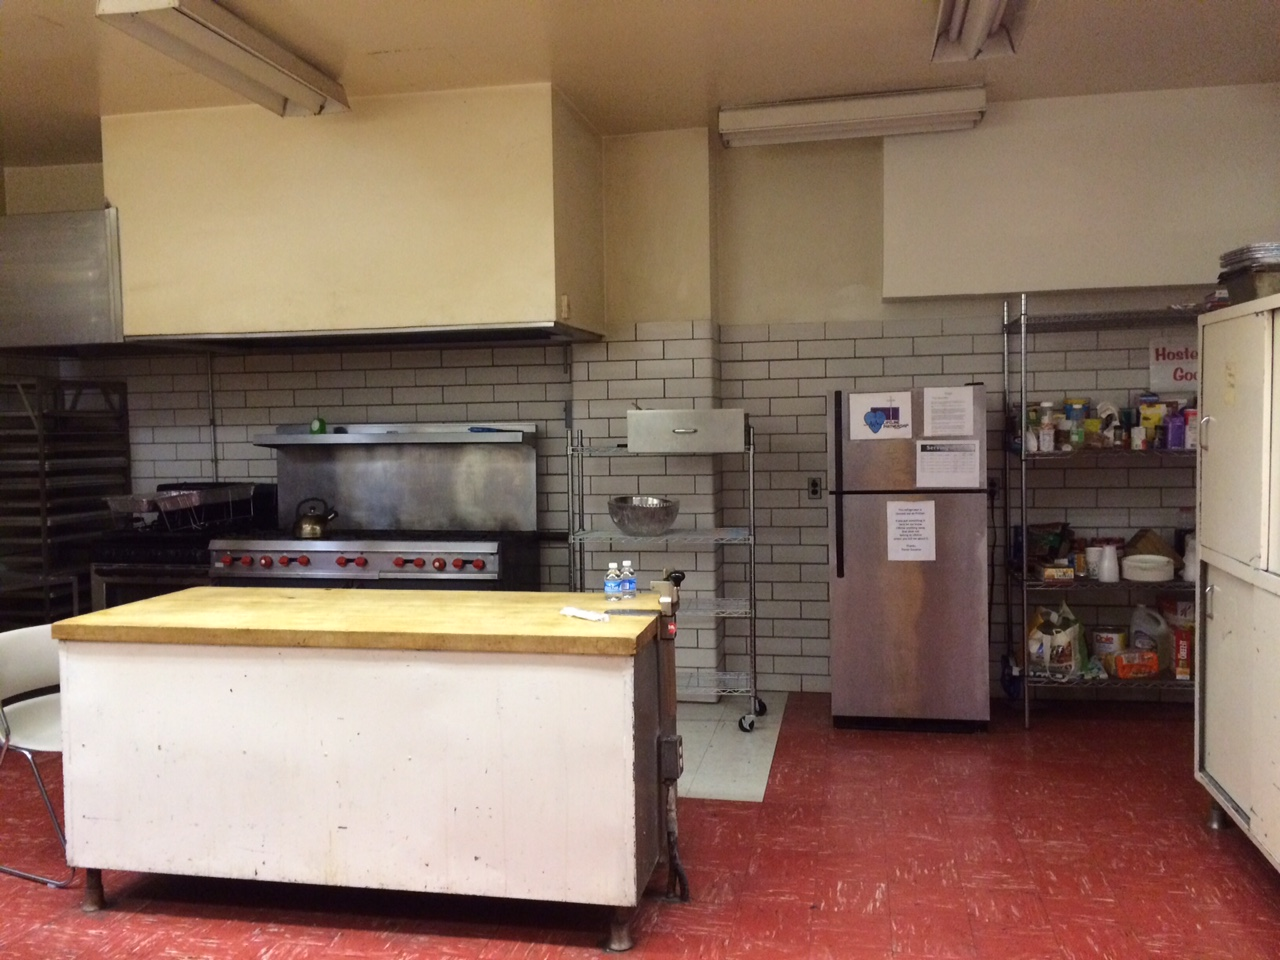 Kitchen Space for Hostel Groups